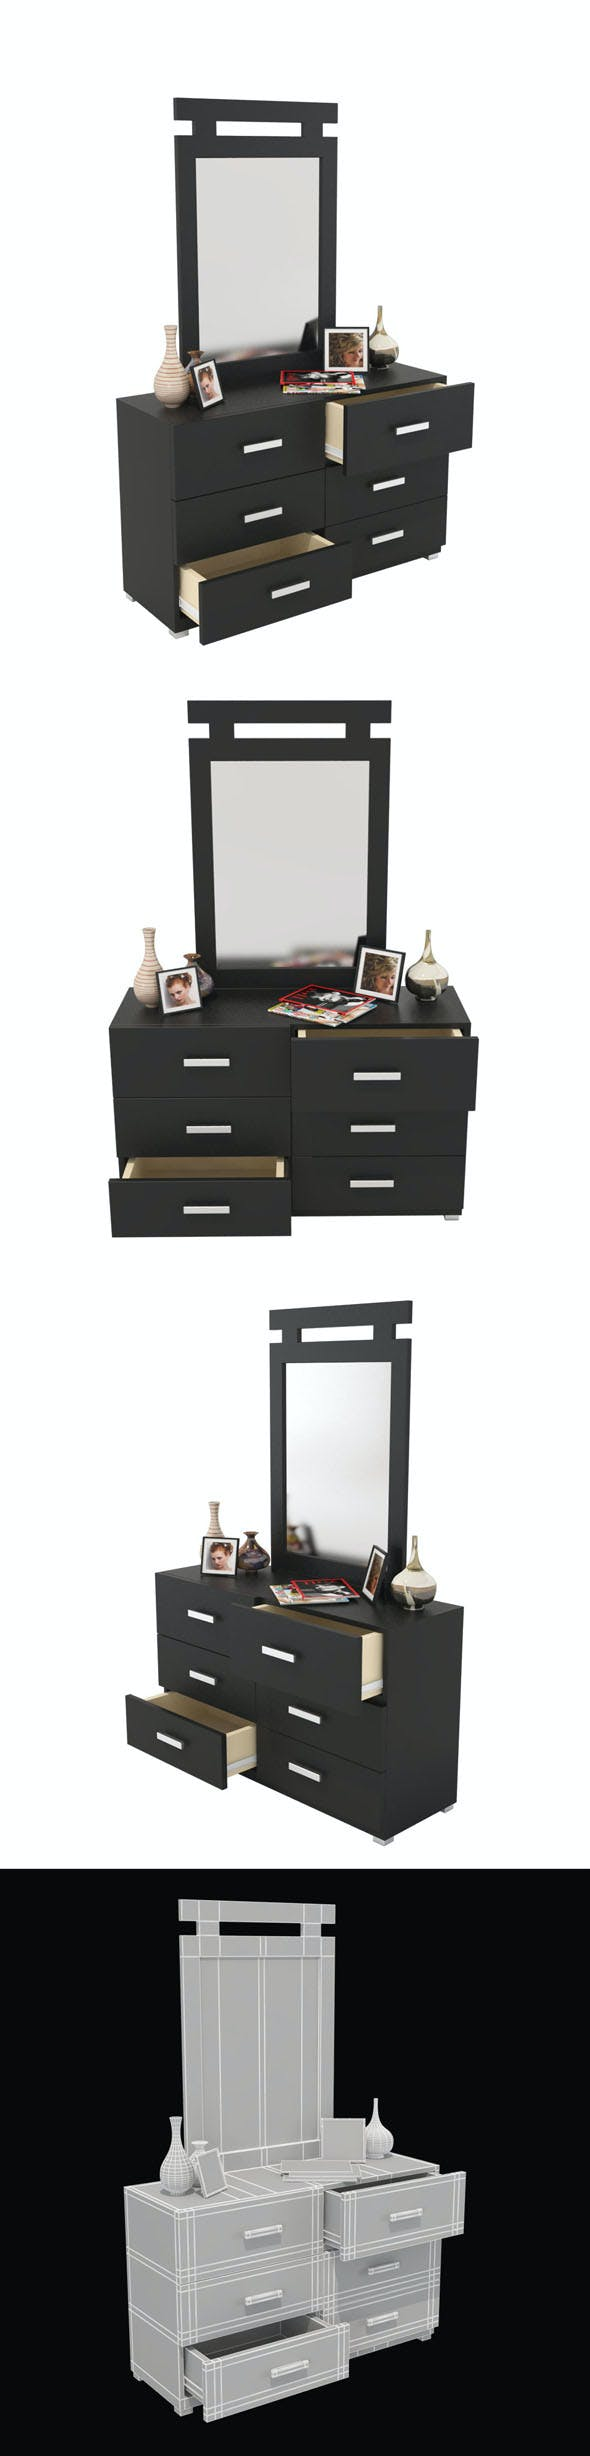 Dressing Table_1 - 3DOcean Item for Sale